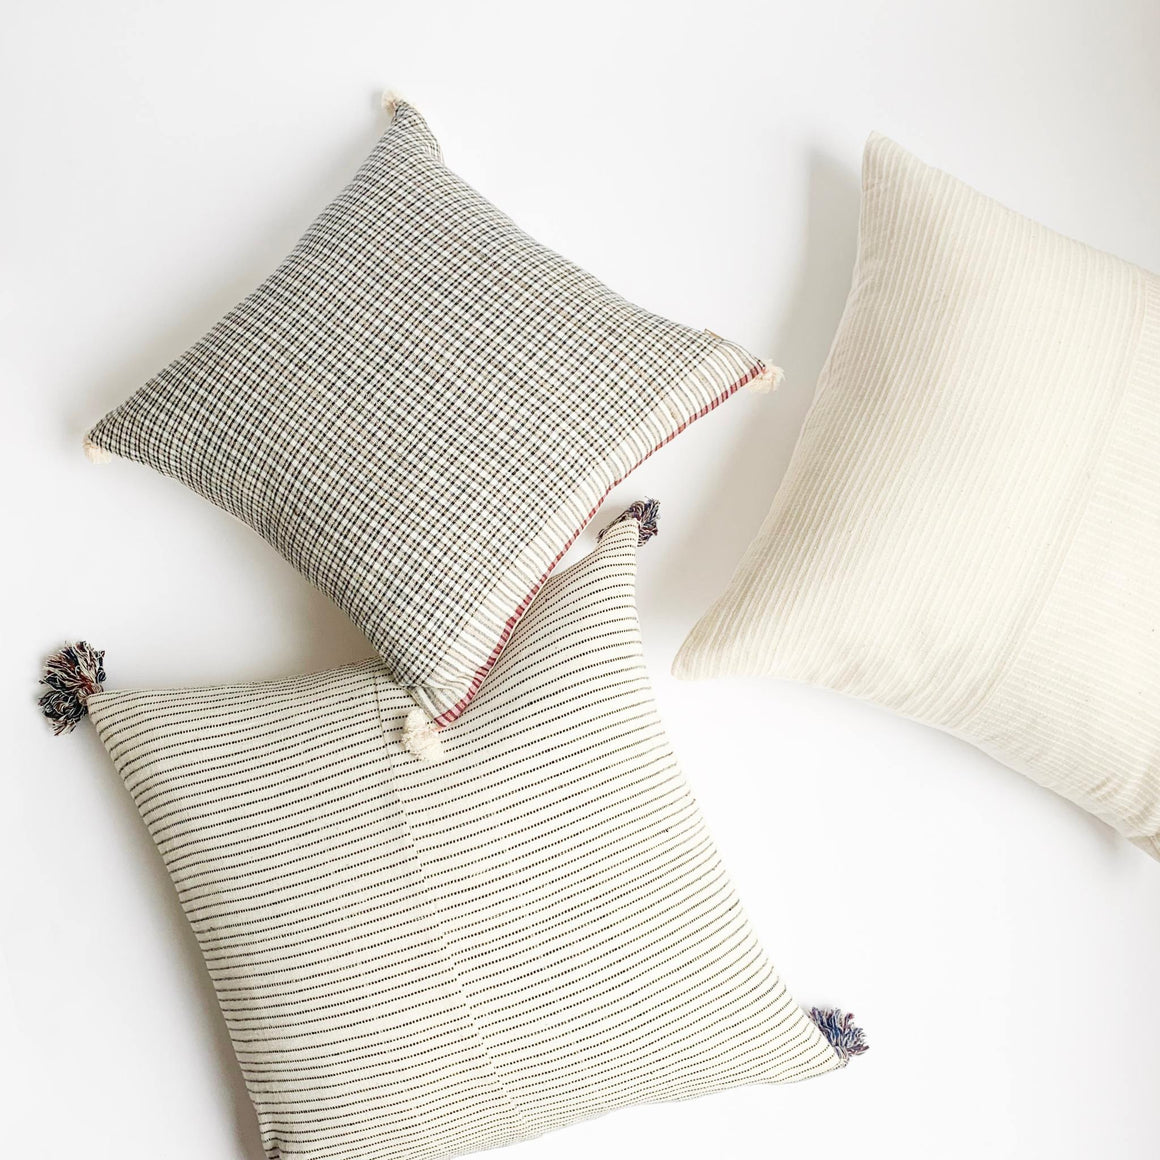 A soft ivory throw pillow in 22x22 inch size featuring ivory striped weave by Ginger Sparrow, a modern home decor brand with a  soul and a story.